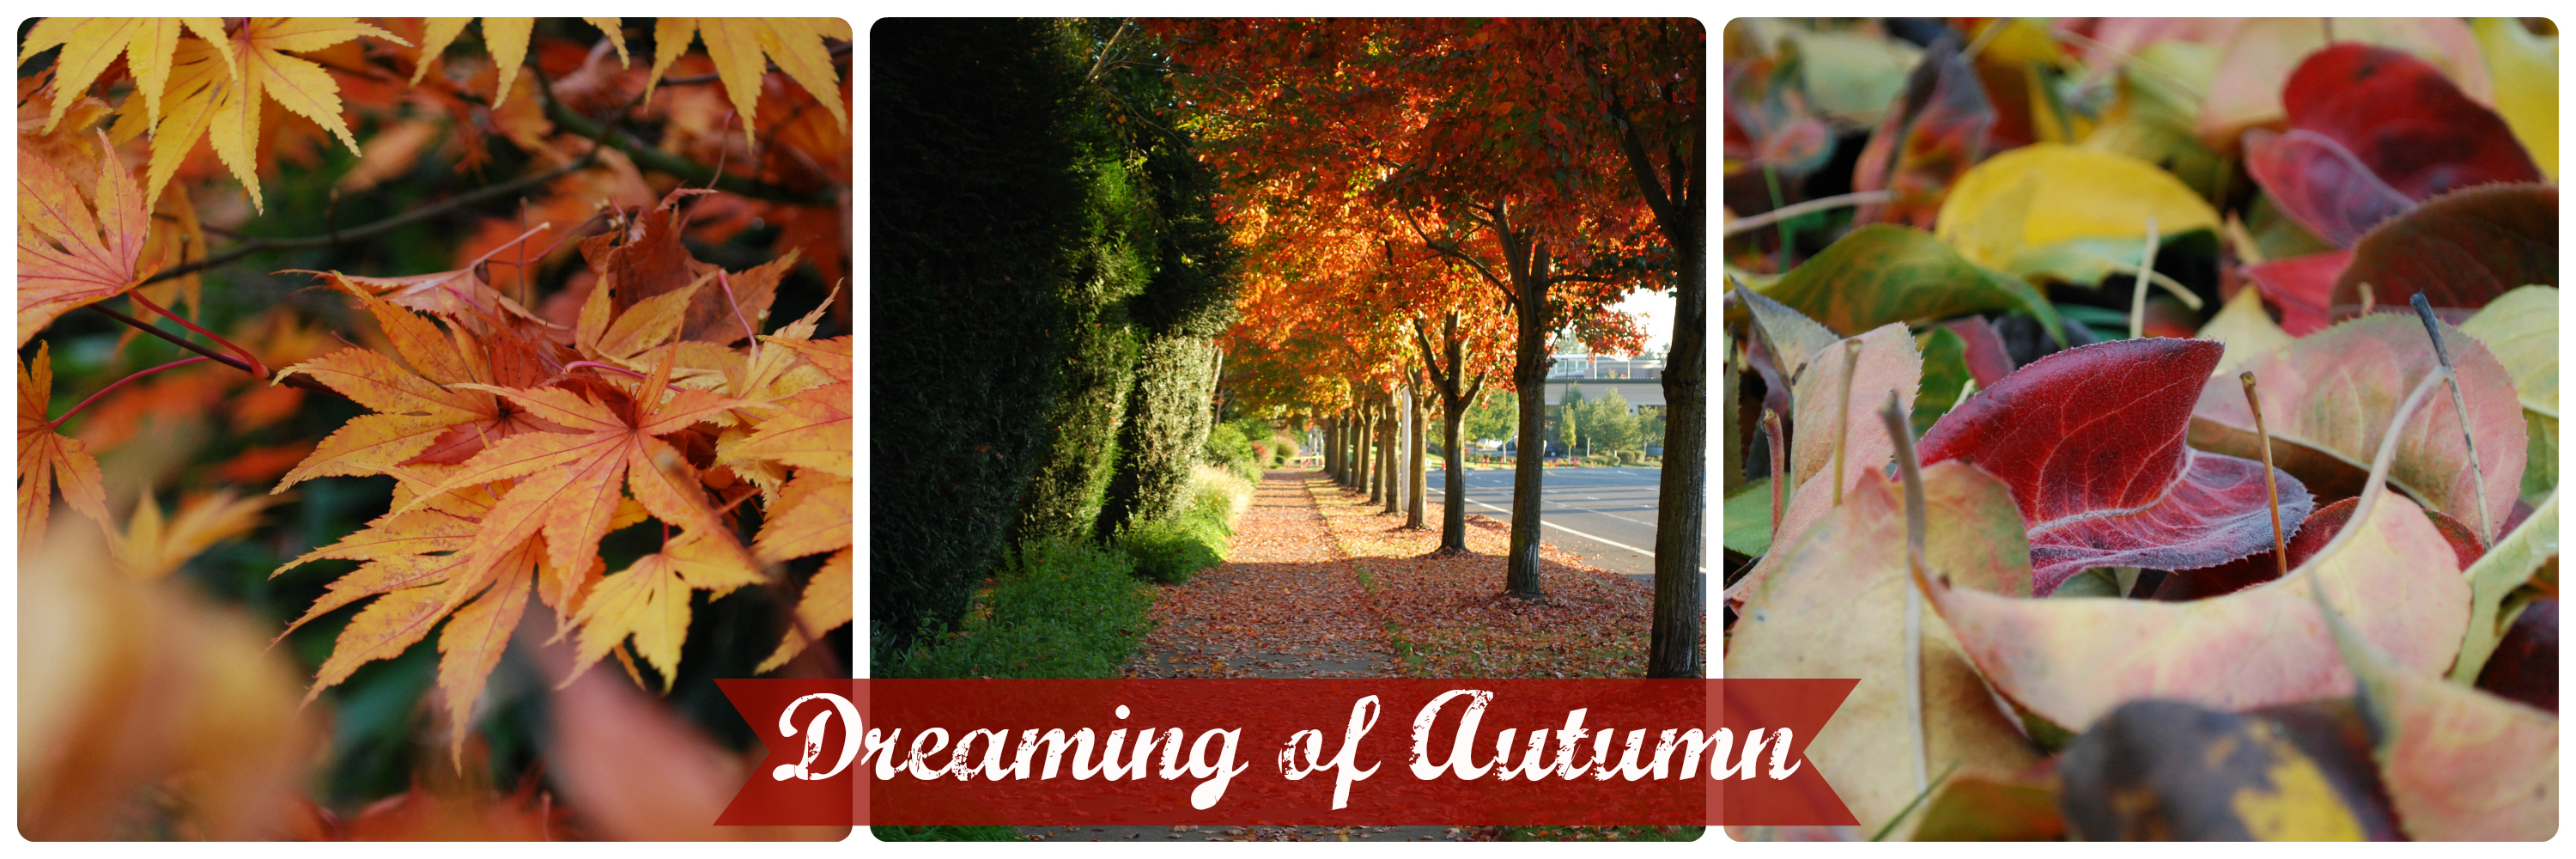 Dreaming of Autumn